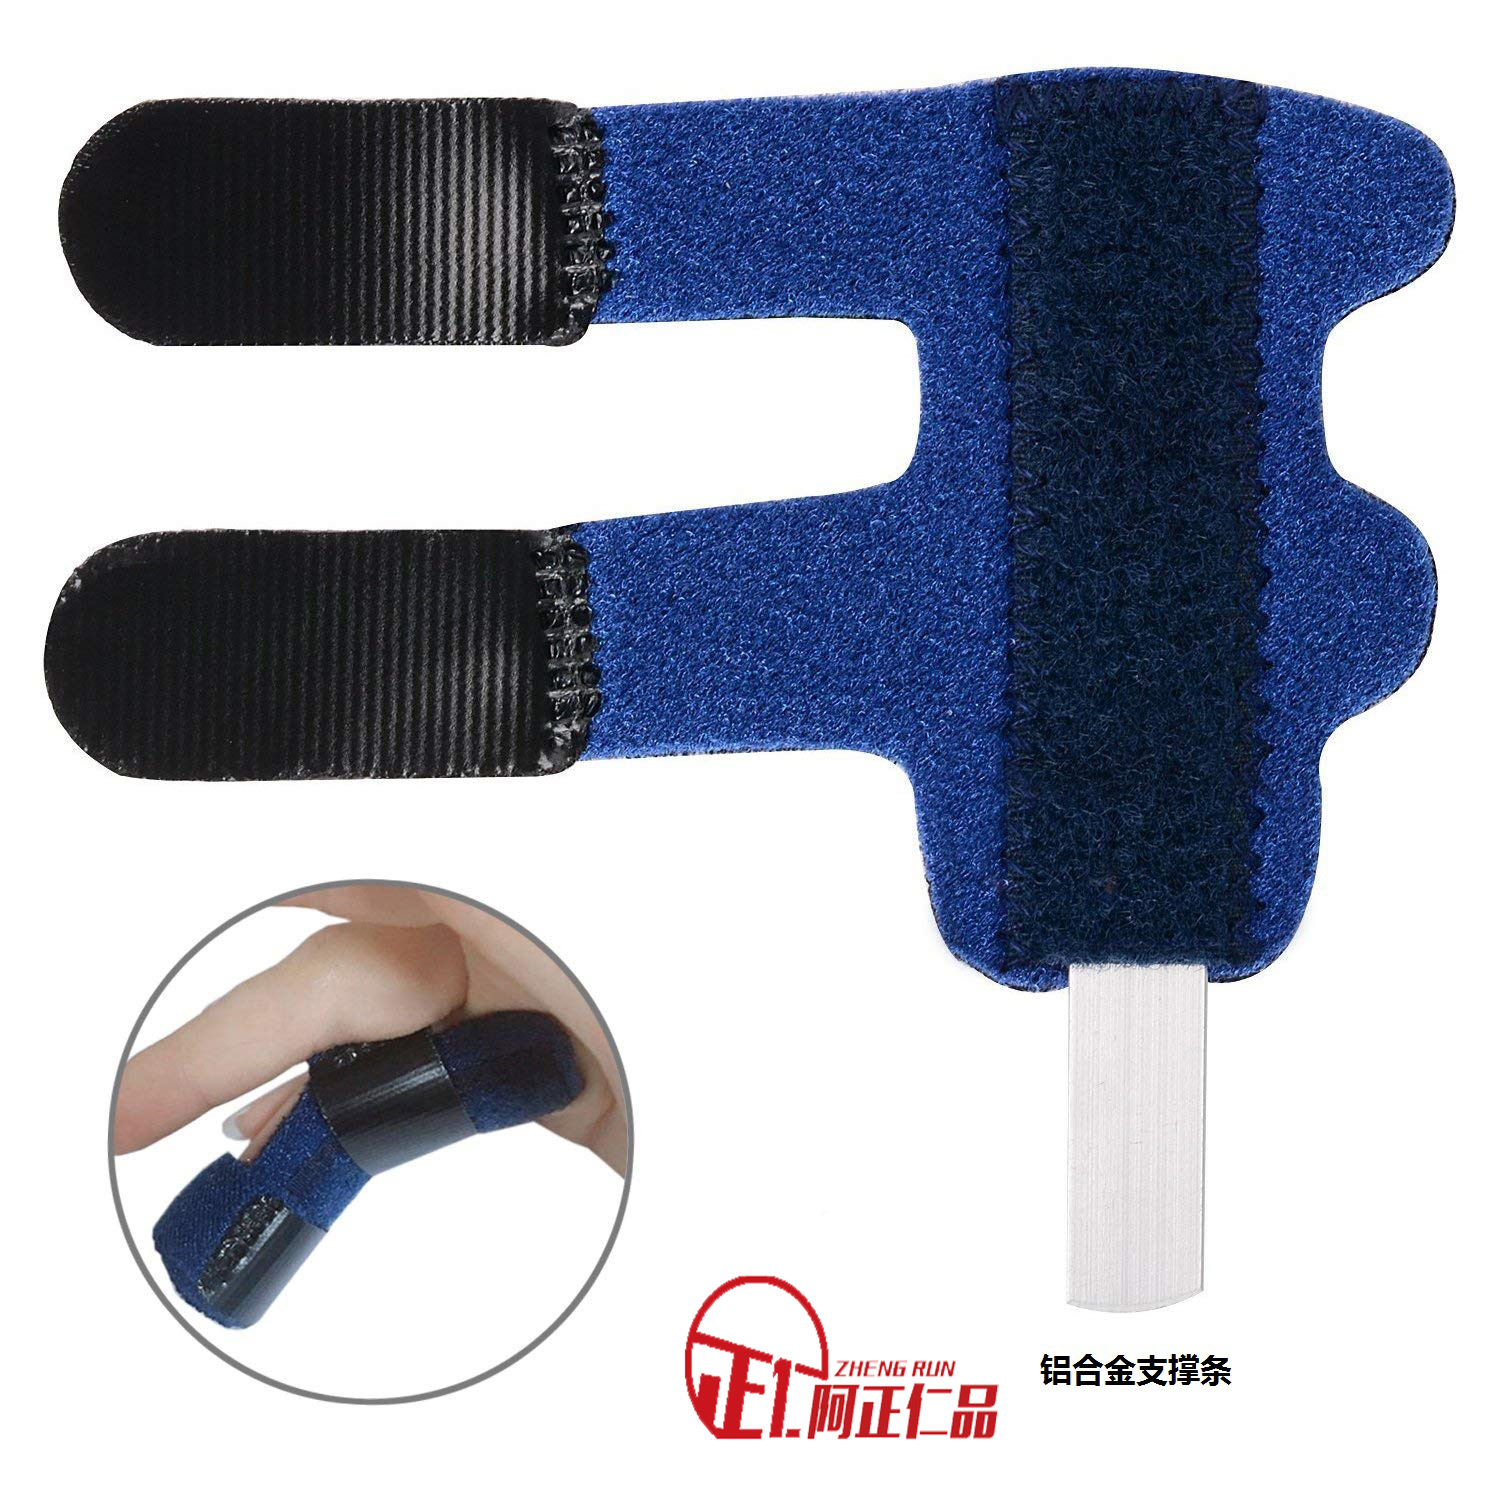 Finger Stall Aluminium Plate Orthotics Band Composite Material Orthotics Band Finger Splint Fracture Sprain With Crazy